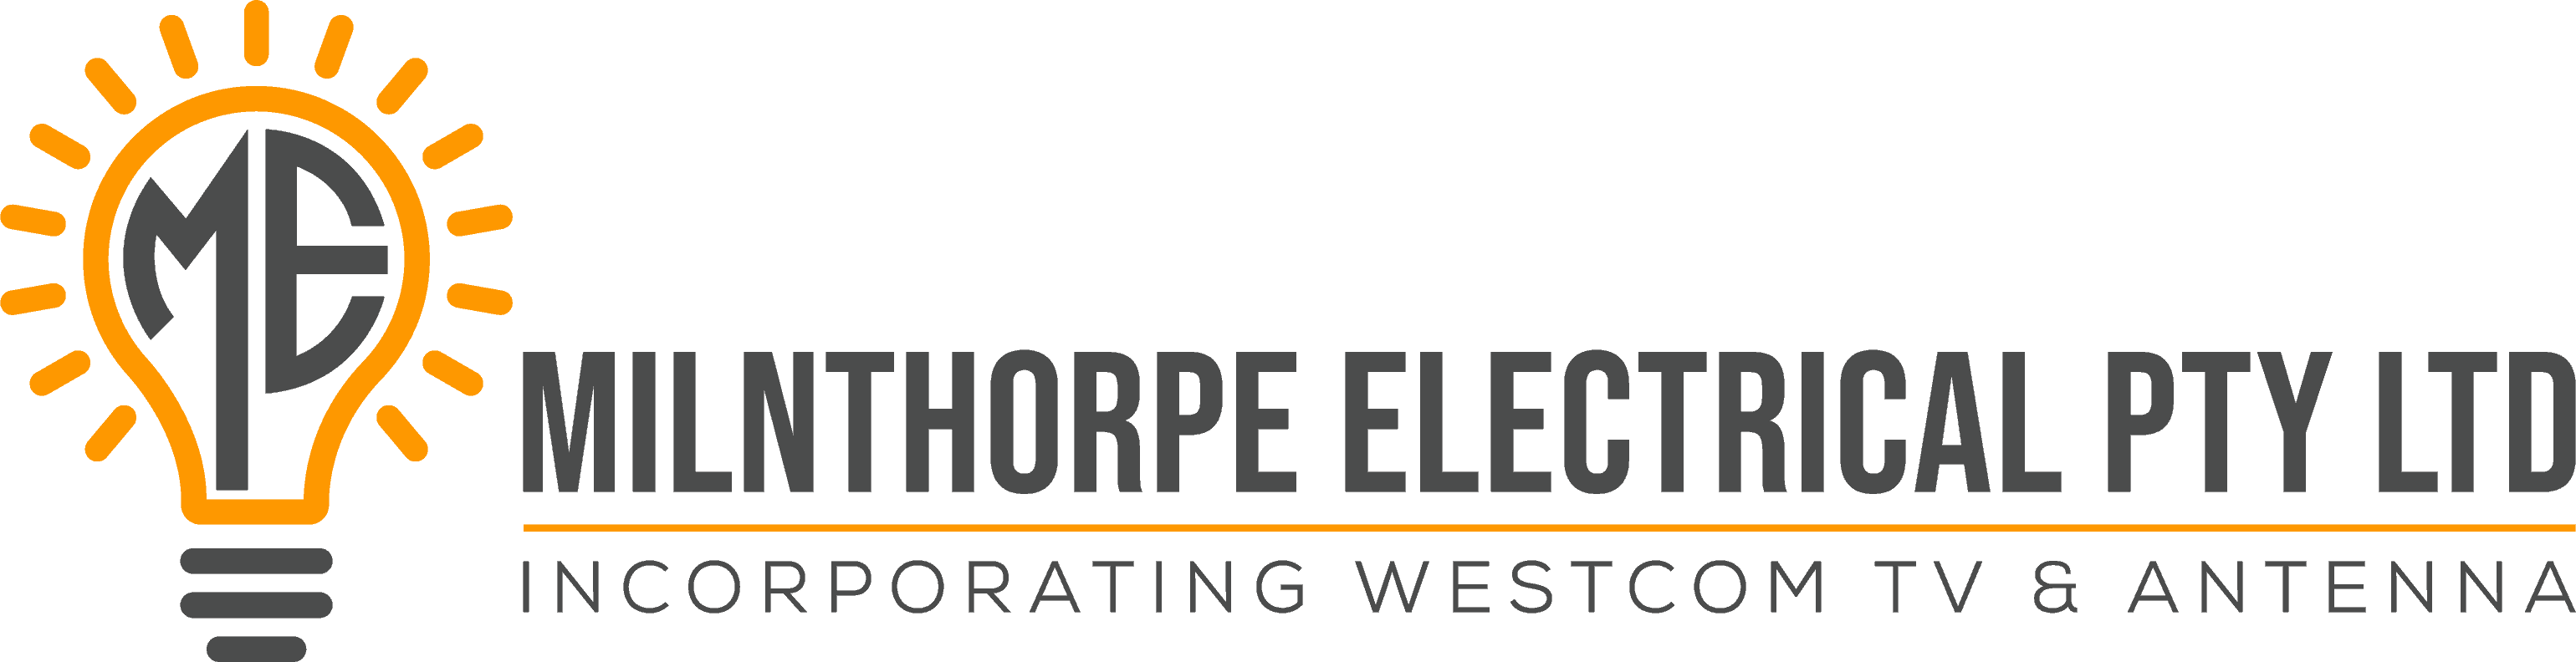 Milnthorpe Electrical